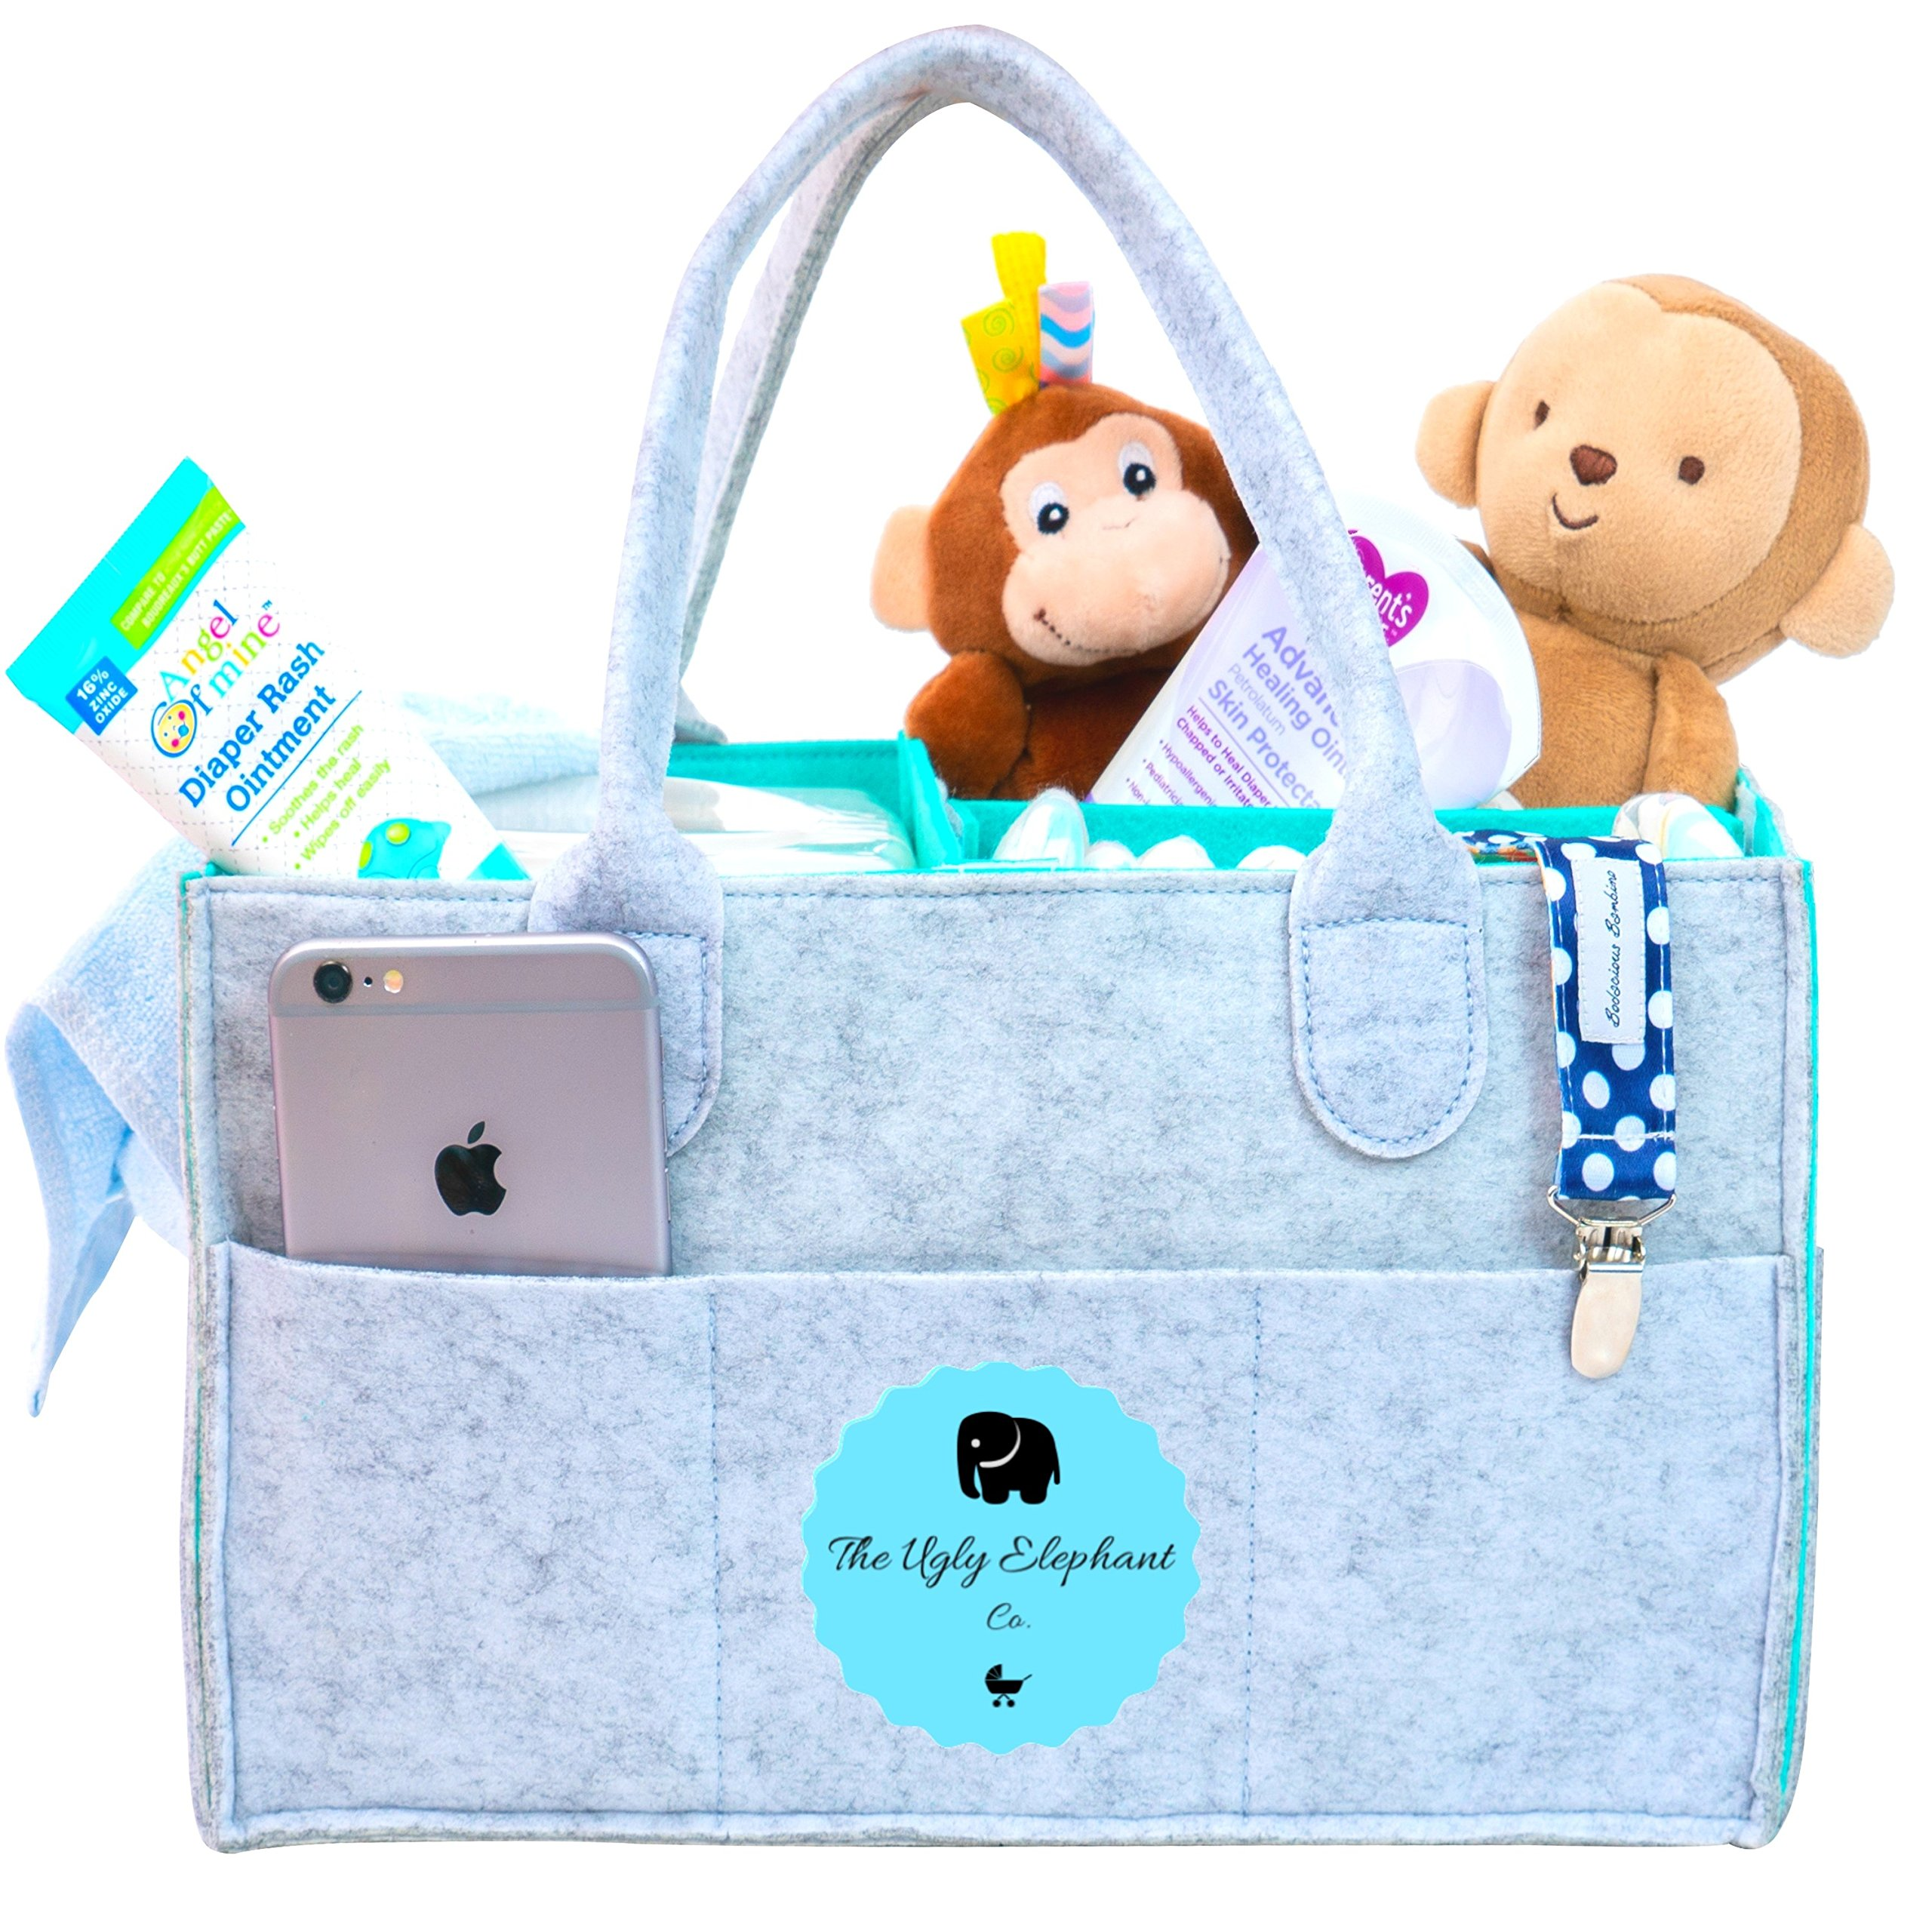 Baby Diaper Caddy Organizer | Donating to Elephant Foundation | Bonus FREE Sun Glasses Case| Baby Shower Gift Basket | Newborn Registry Must Have | Boy Girl Changing Table | Large Car Travel Organizer